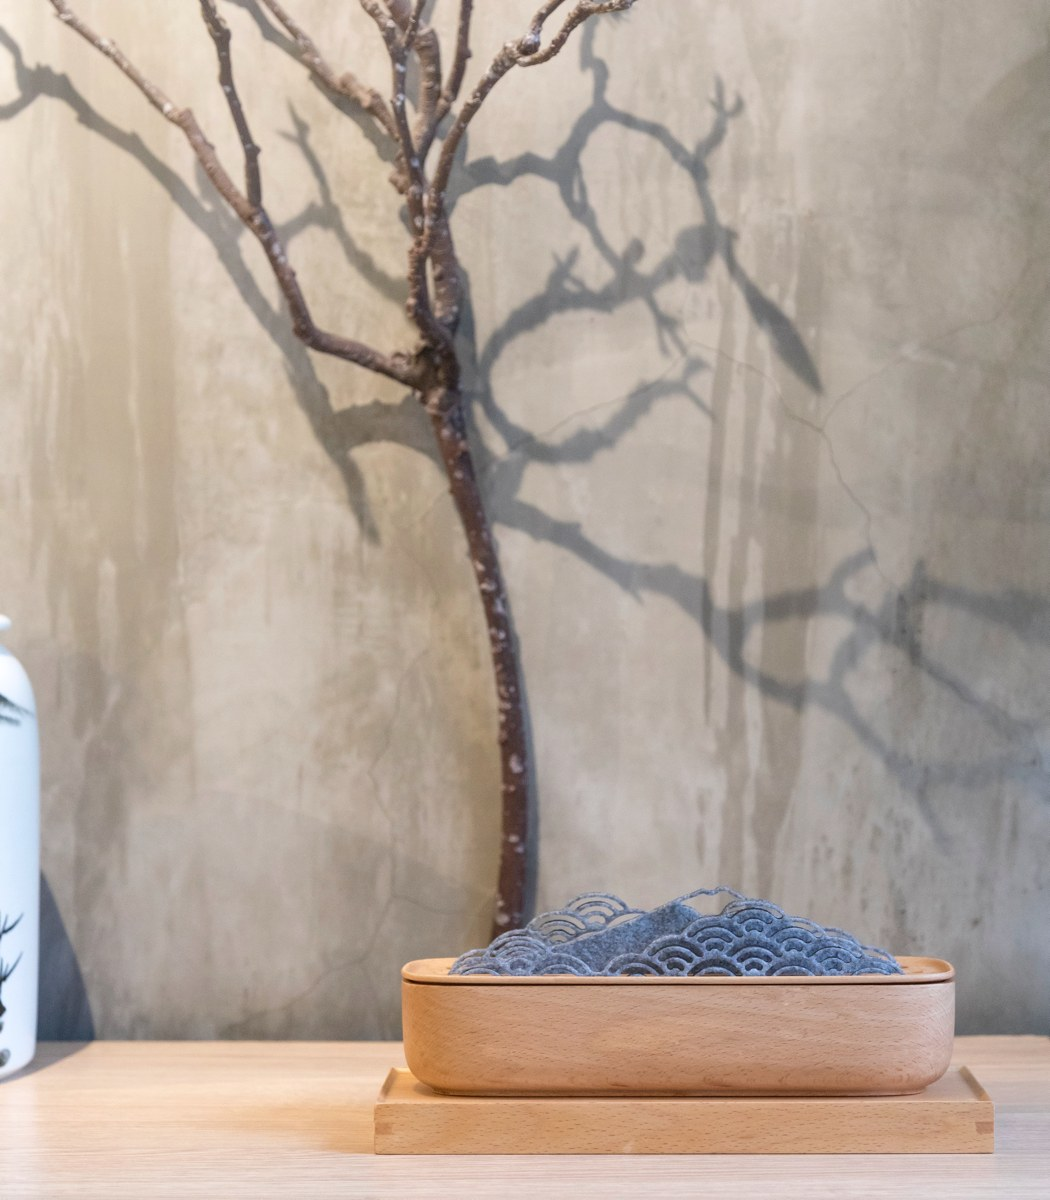 sansui_humidifier_aromatherapy_diffuser_08